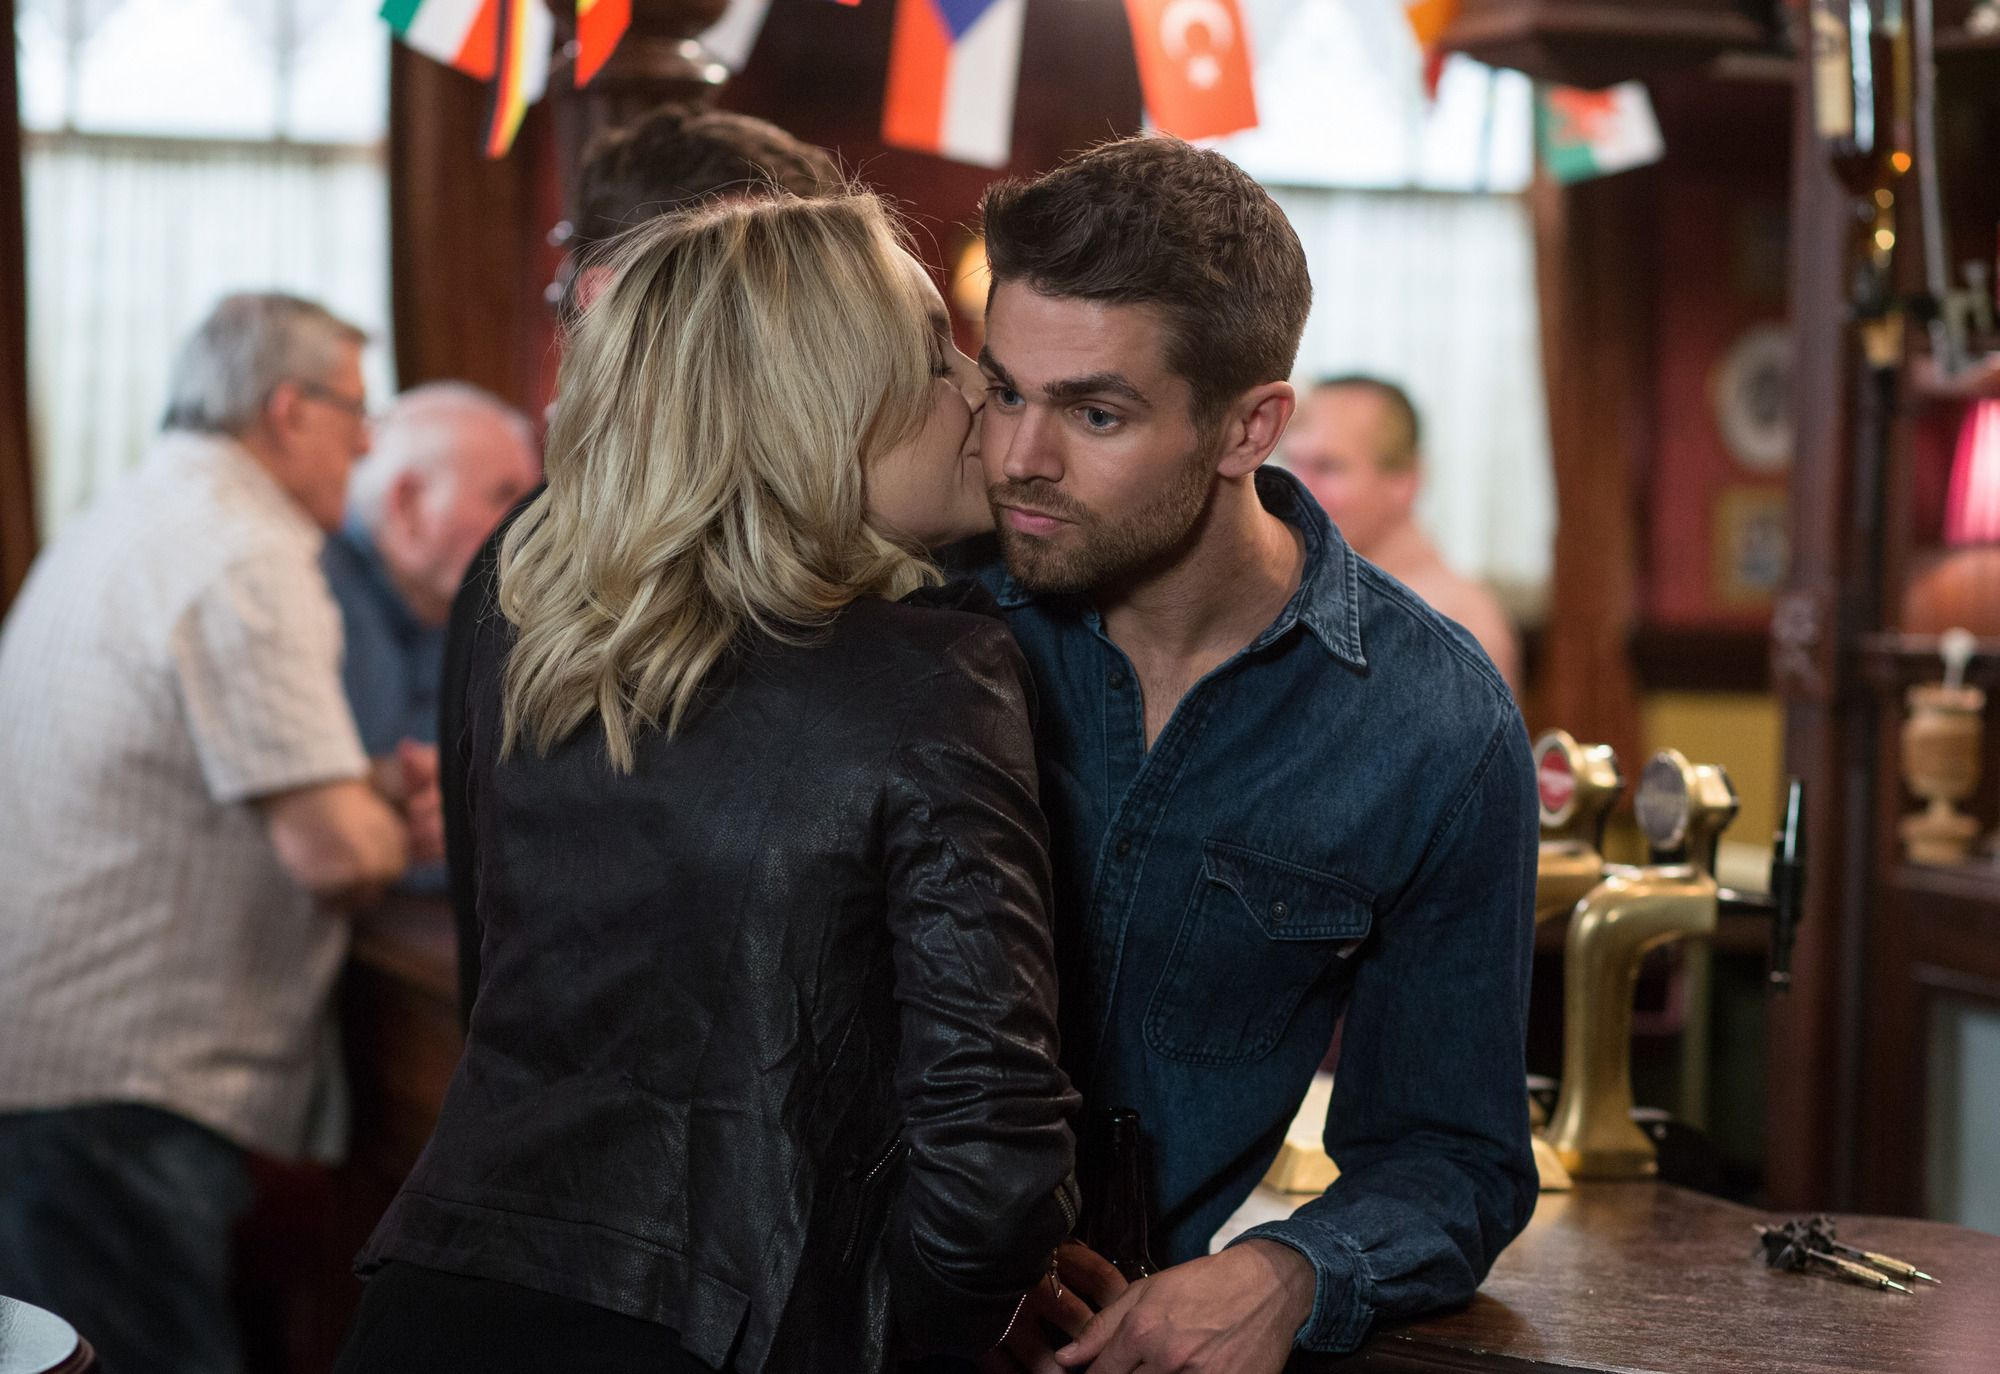 Who is ronnie dating in eastenders